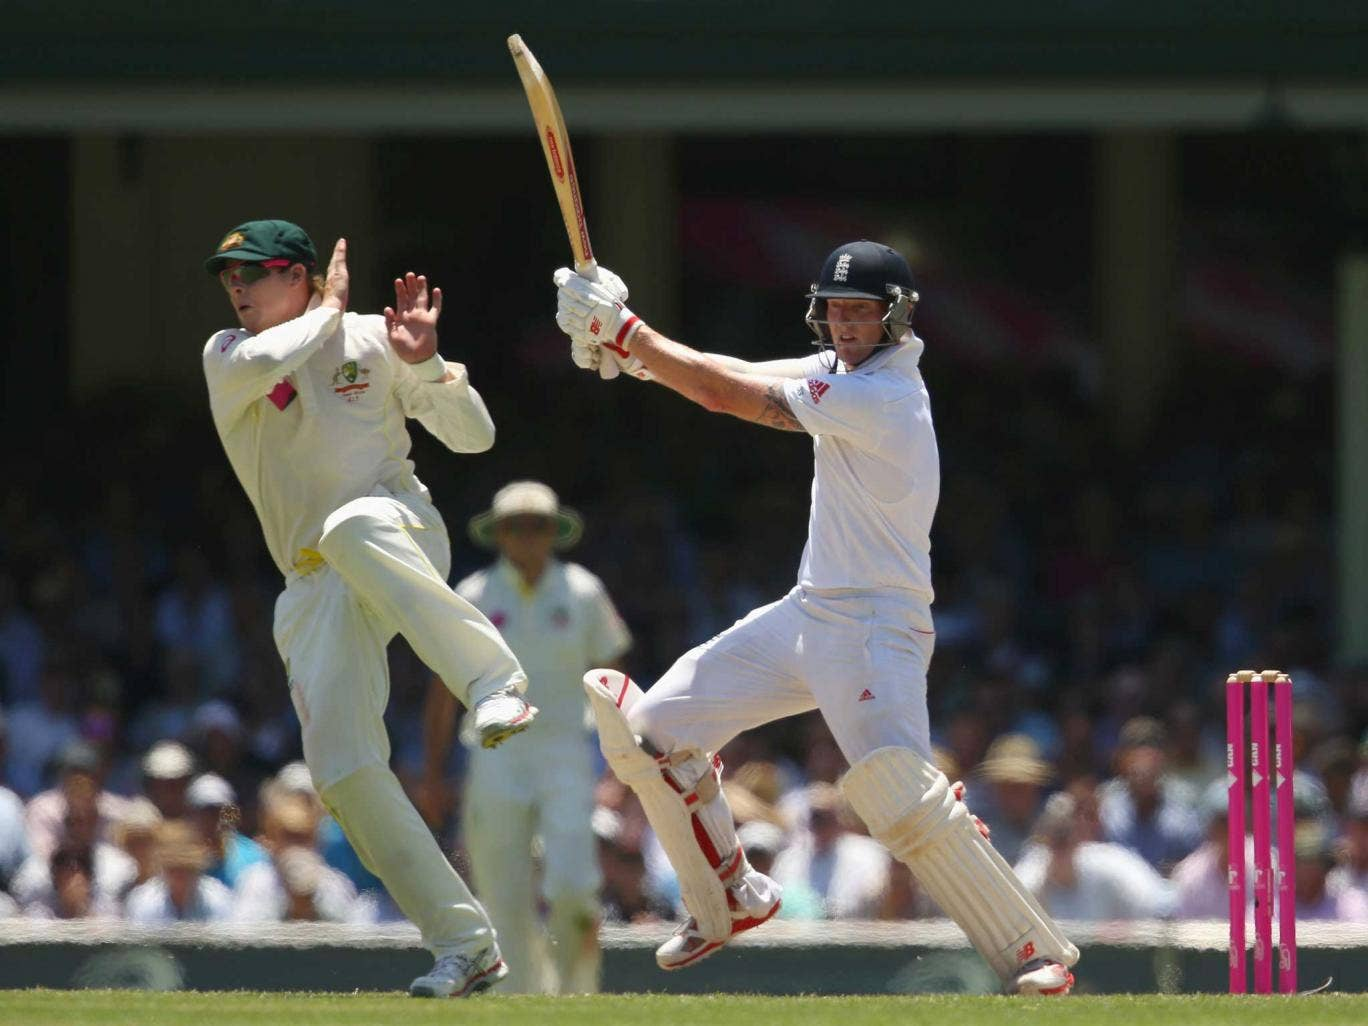 No England player reached 50, with Ben Stokes, who took six for 99 on day one, the top scorer with 47